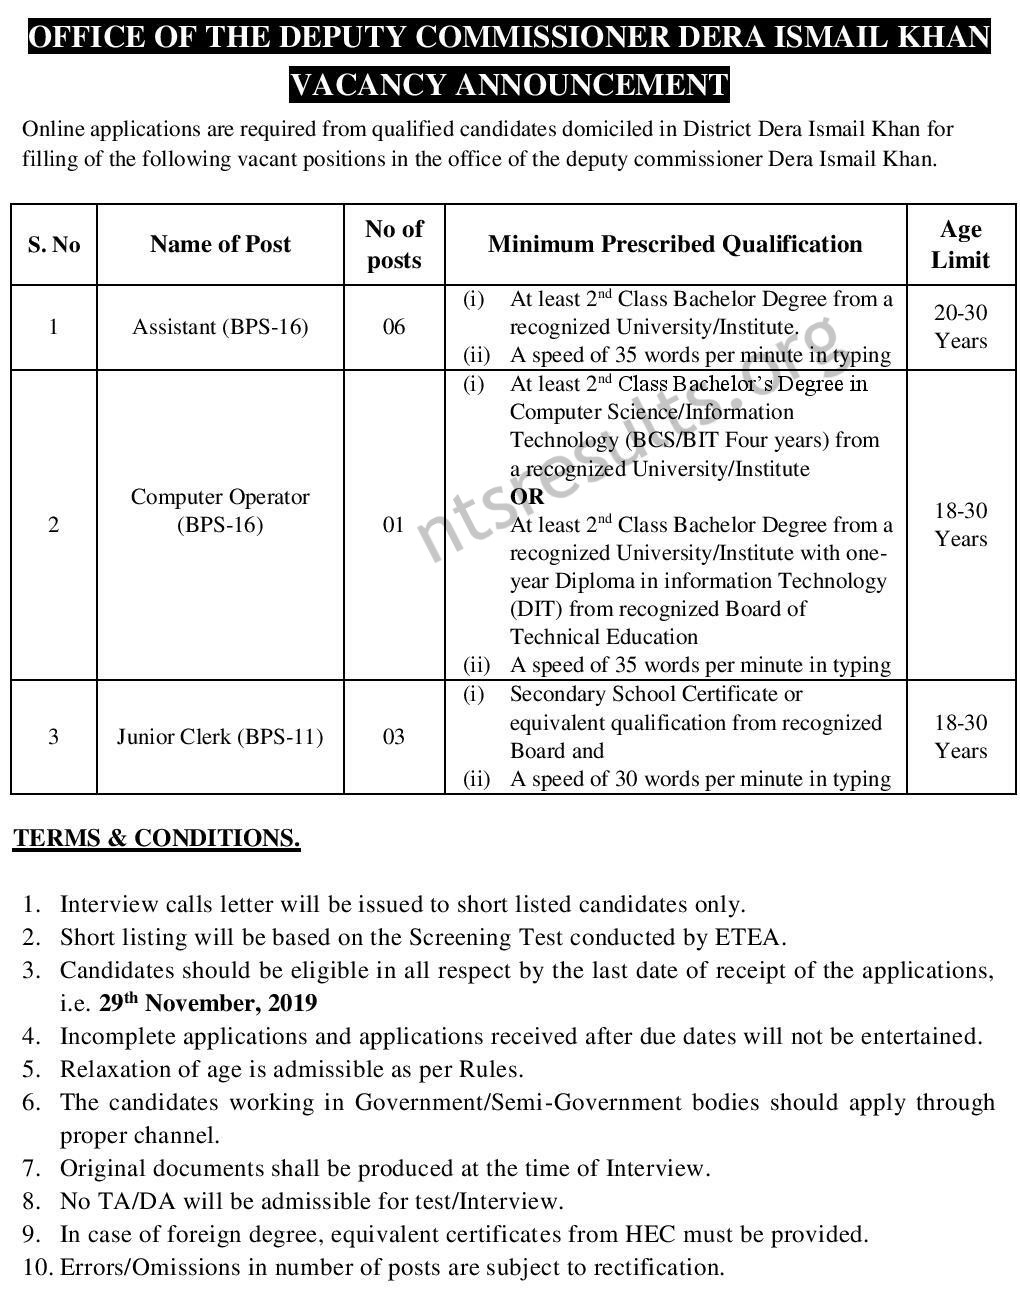 DCO Deputy Commissioner Office Dera Ismail Khan Jobs Via ETEA